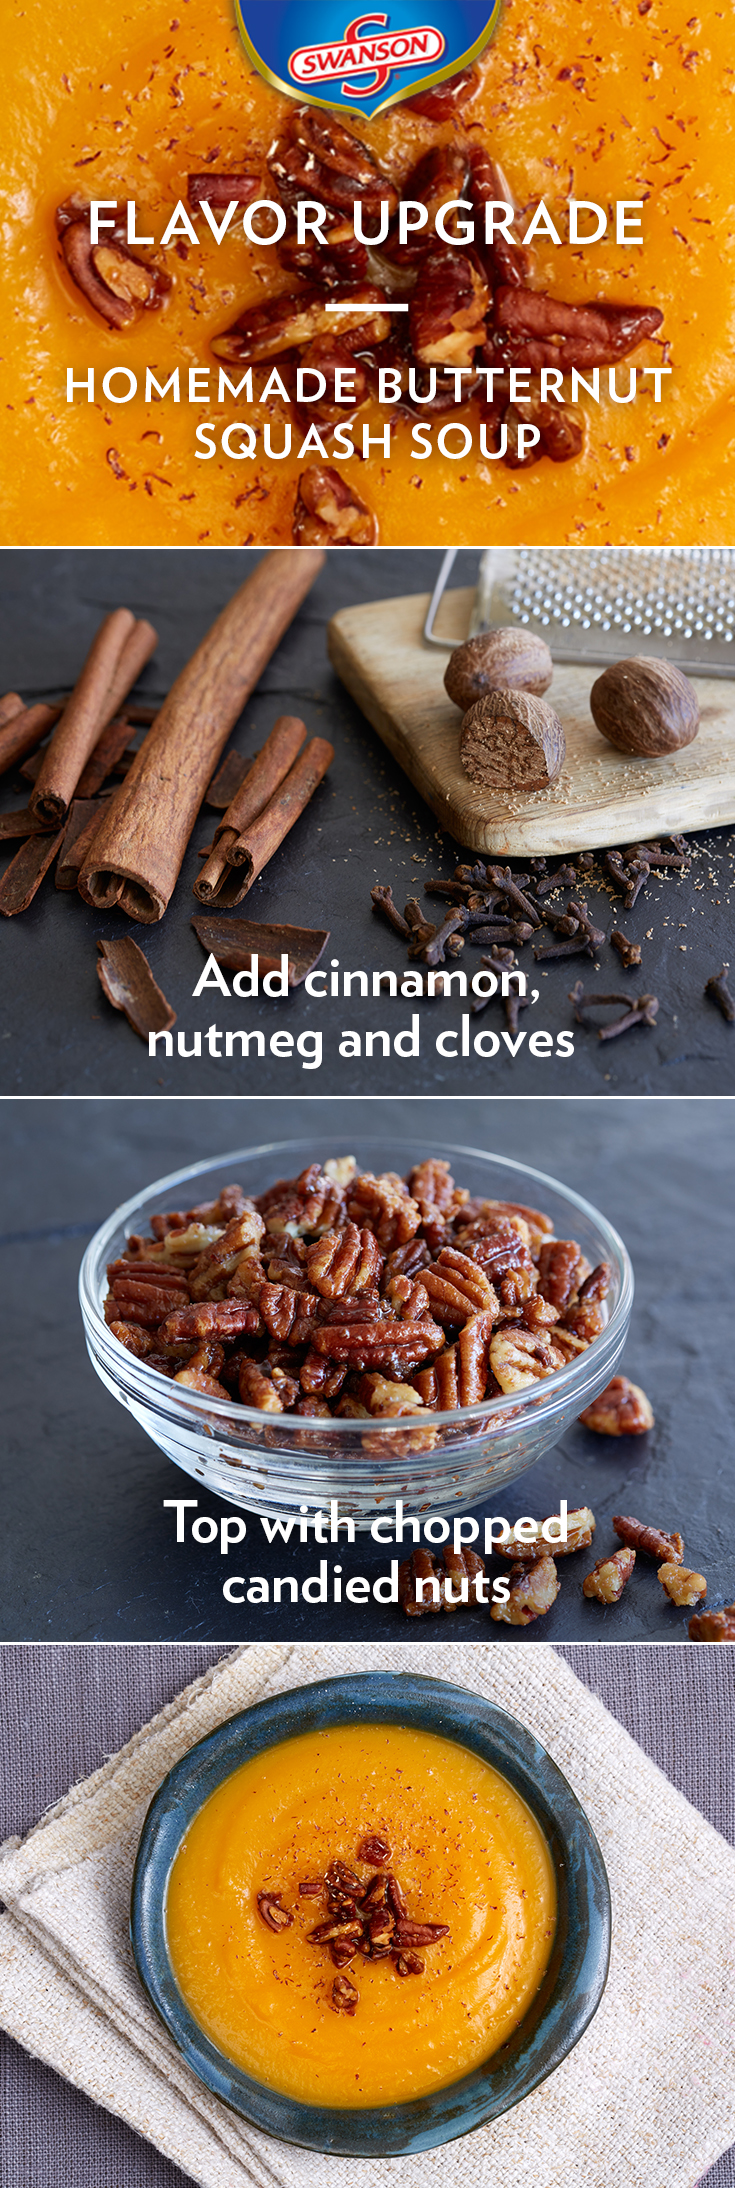 Enhance this classic comfort dish with fall spices and sweet candied nuts for added flavor and texture. Add cinnamon, nutmeg and cloves to your butternut squash soup and top with chopped candied nuts. The sweet flavors of the nuts and spices balance well with the savory notes of the squash.